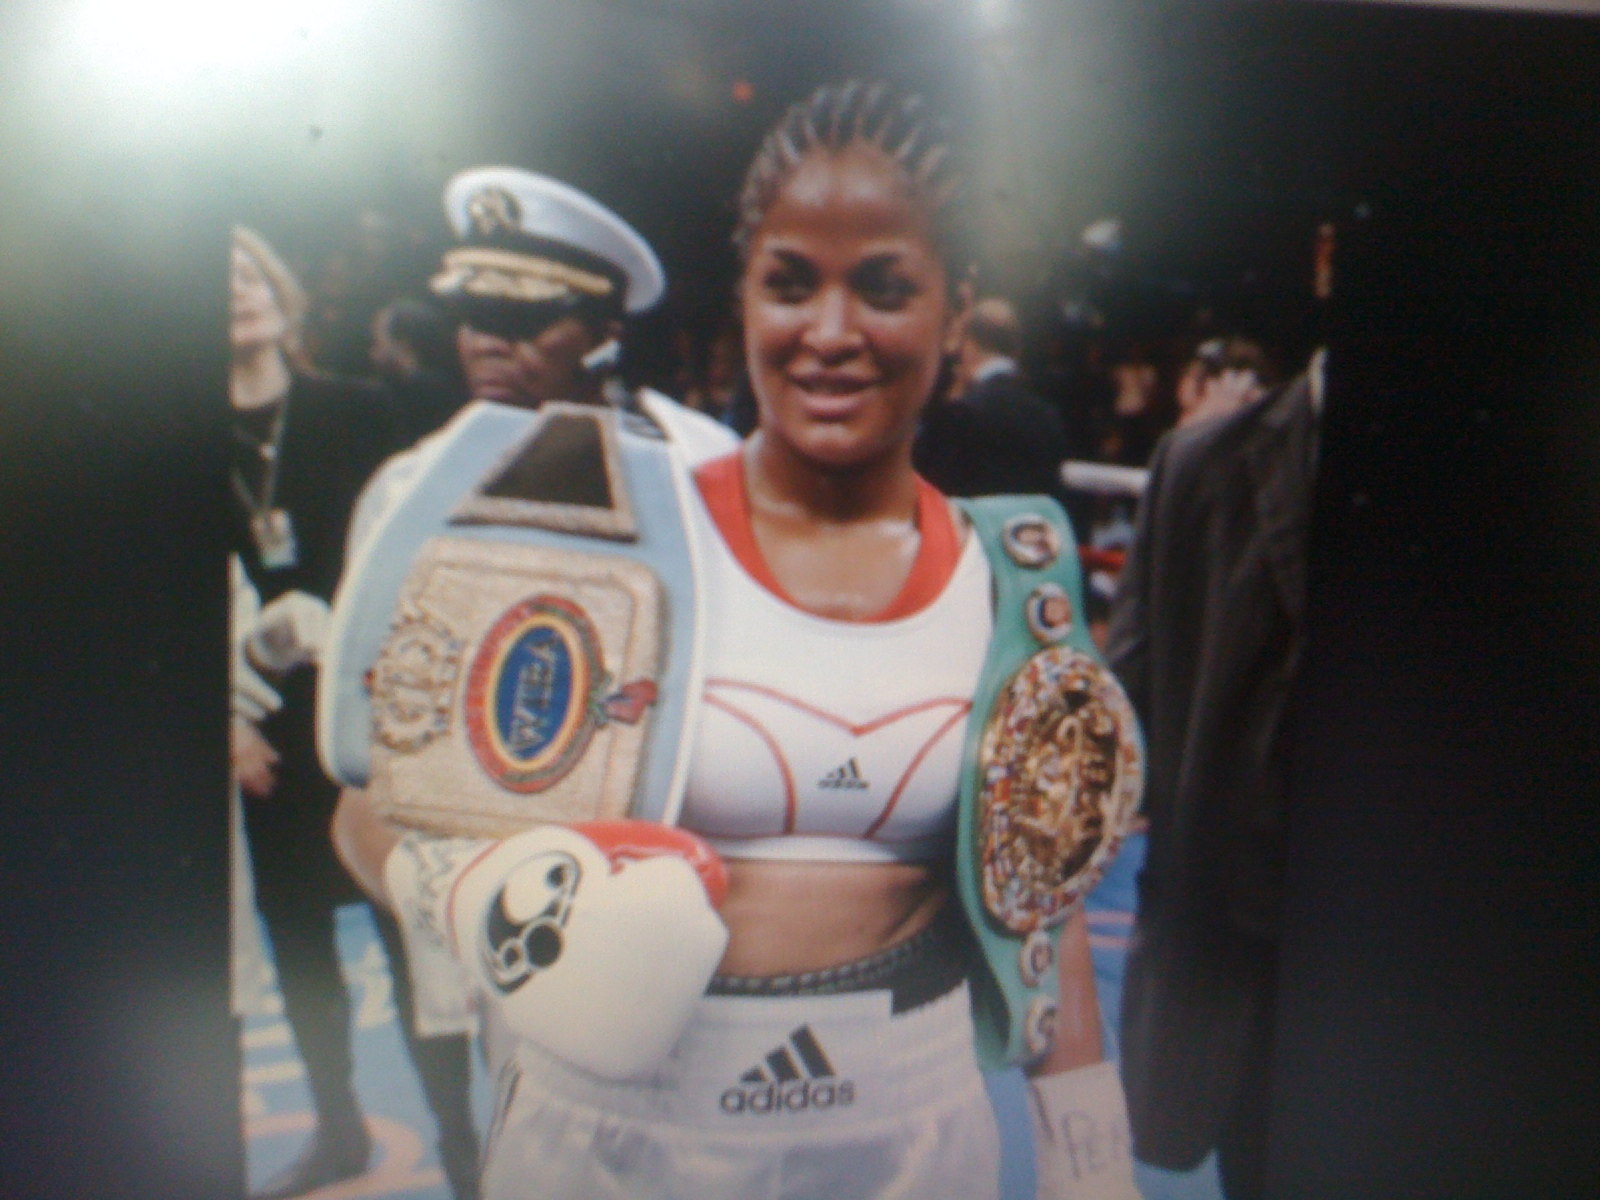 laila ali boxing history Laila ali (born december 30, 1977 in miami beach, florida) is a professional boxer she is the daughter of boxing legend muhammad ali and his third wife veronica porsche ali  she was their second child and is the most famous of the nine children born to muhammad ali.